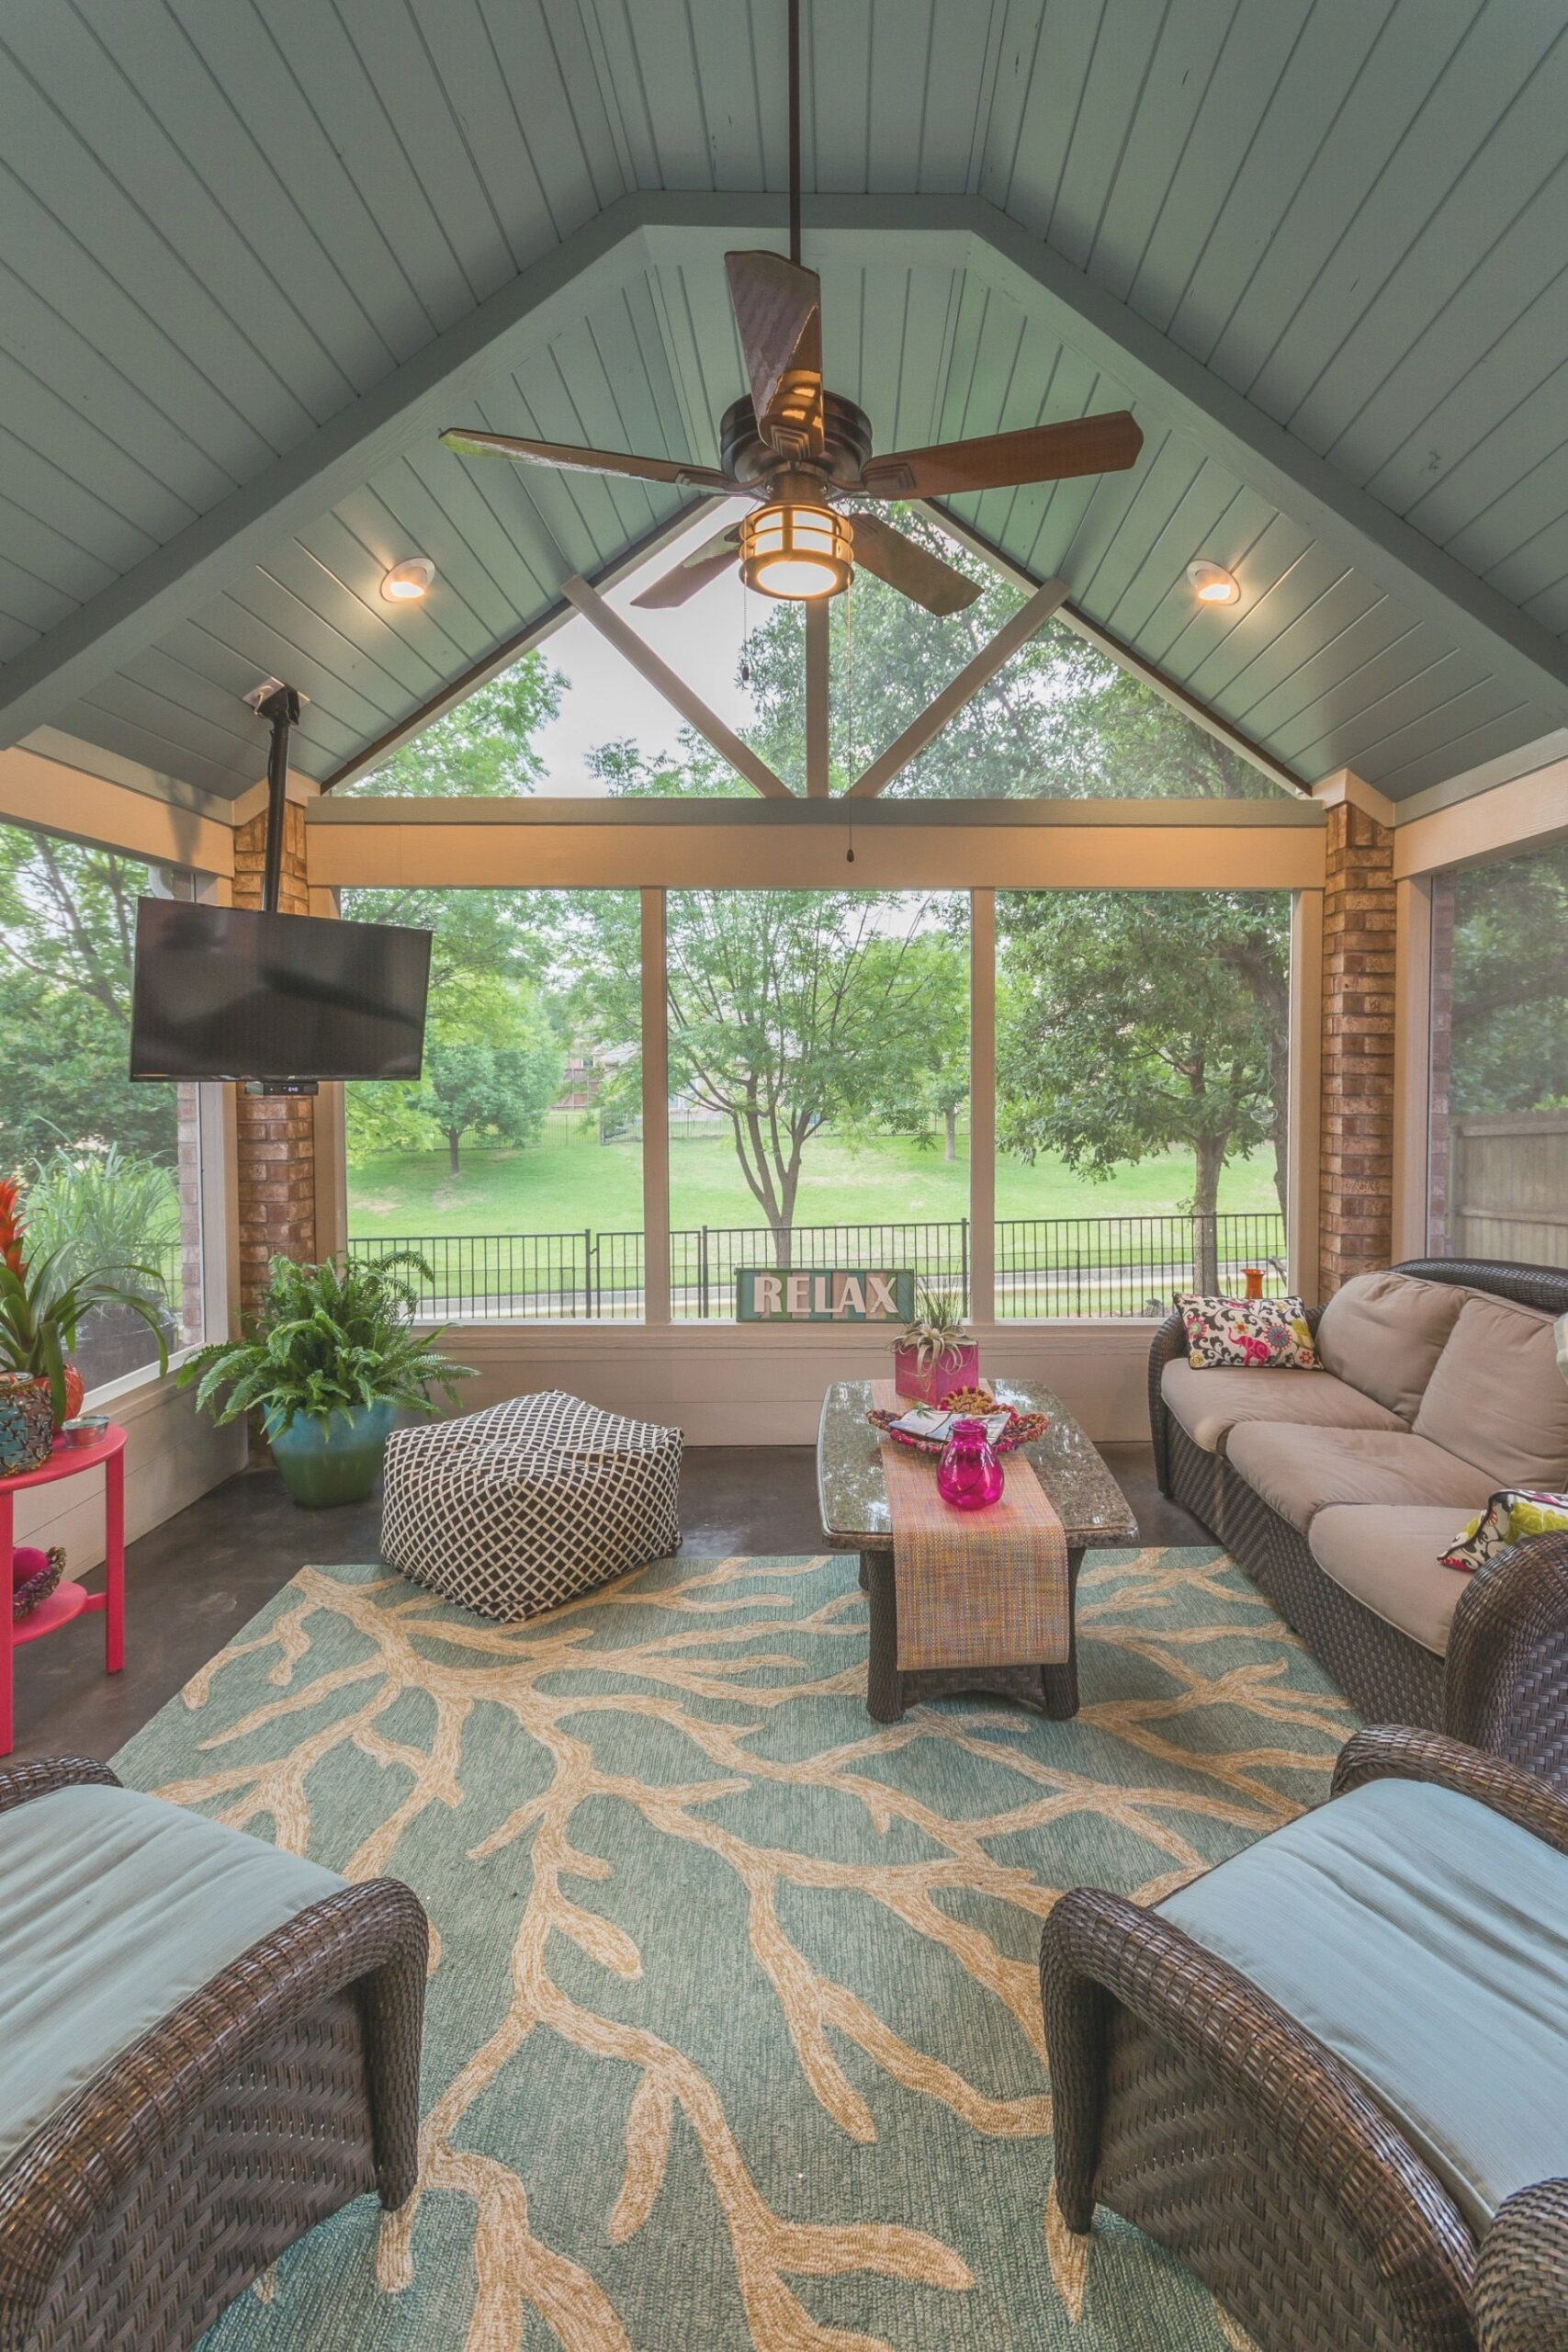 Screened In Porch | Screened Porch Designs, Porch Design with regard to Screened In Porch Ideas